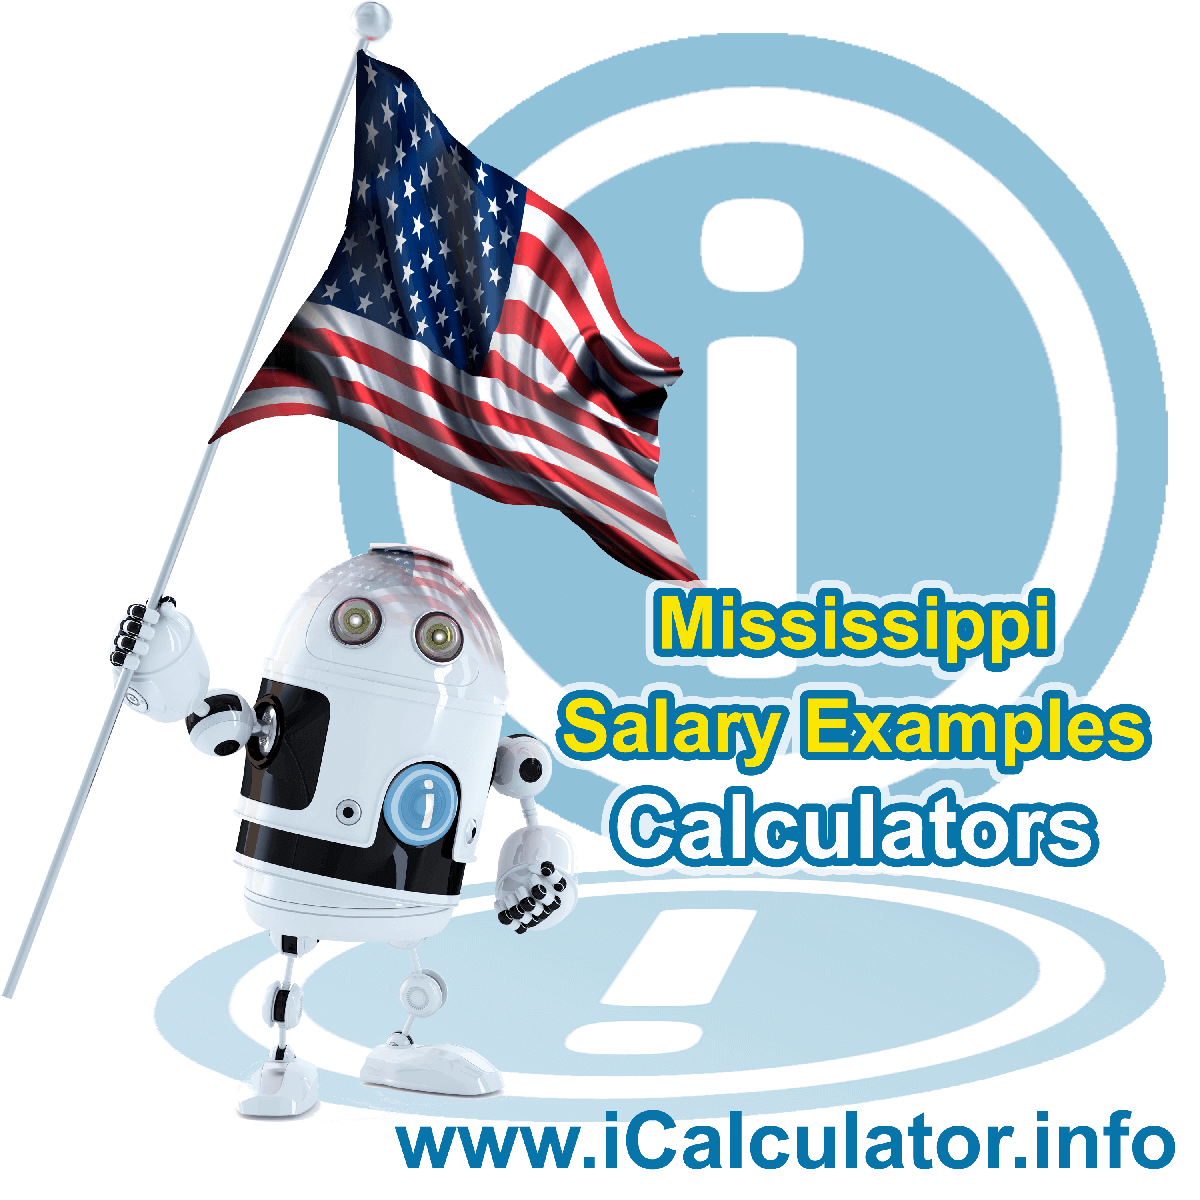 Mississippi Salary Example for $100.00 in 2020 | iCalculator | $100.00 salary example for employee and employer paying Mississippi State tincome taxes. Detailed salary after tax calculation including Mississippi State Tax, Federal State Tax, Medicare Deductions, Social Security, Capital Gains and other income tax and salary deductions complete with supporting Mississippi state tax tables